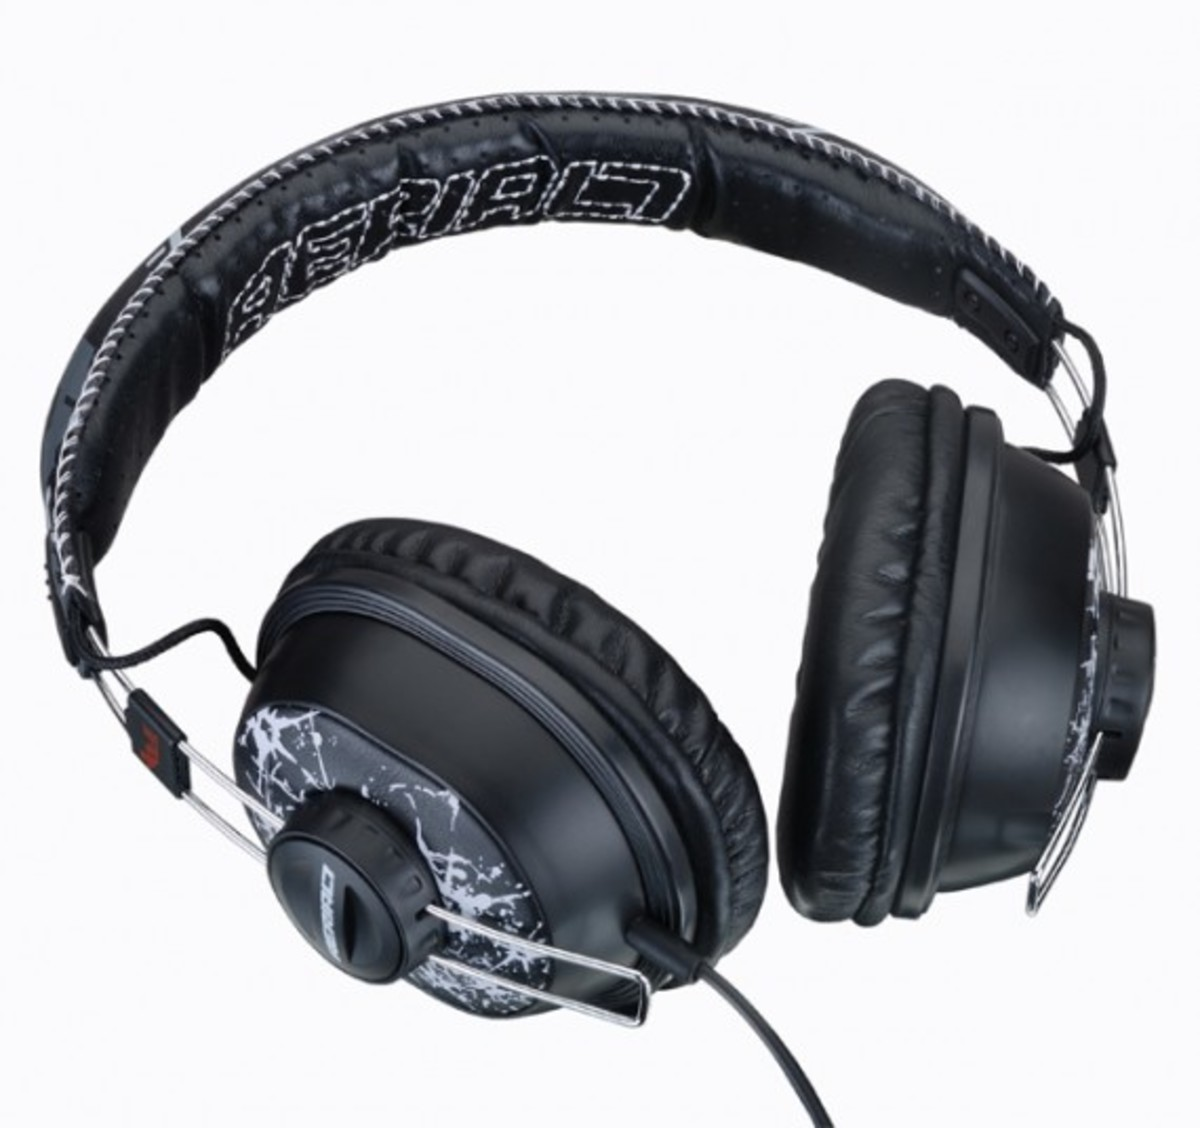 aerial7-methamphibian-sbtg-limited-chopper2-headphone-06